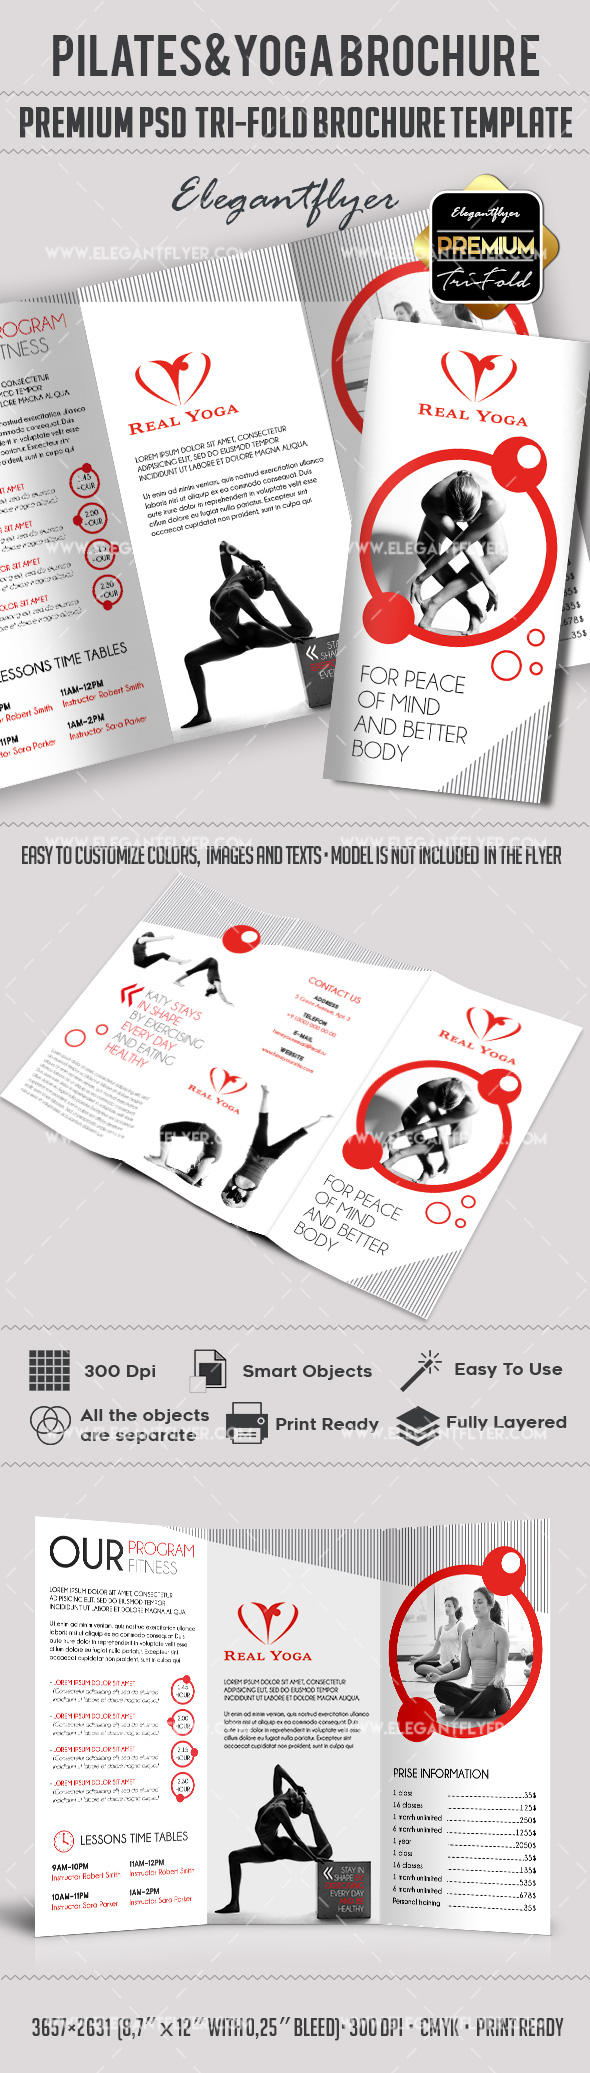 Tri-Fold PSD Brochure for Pilates and Yoga